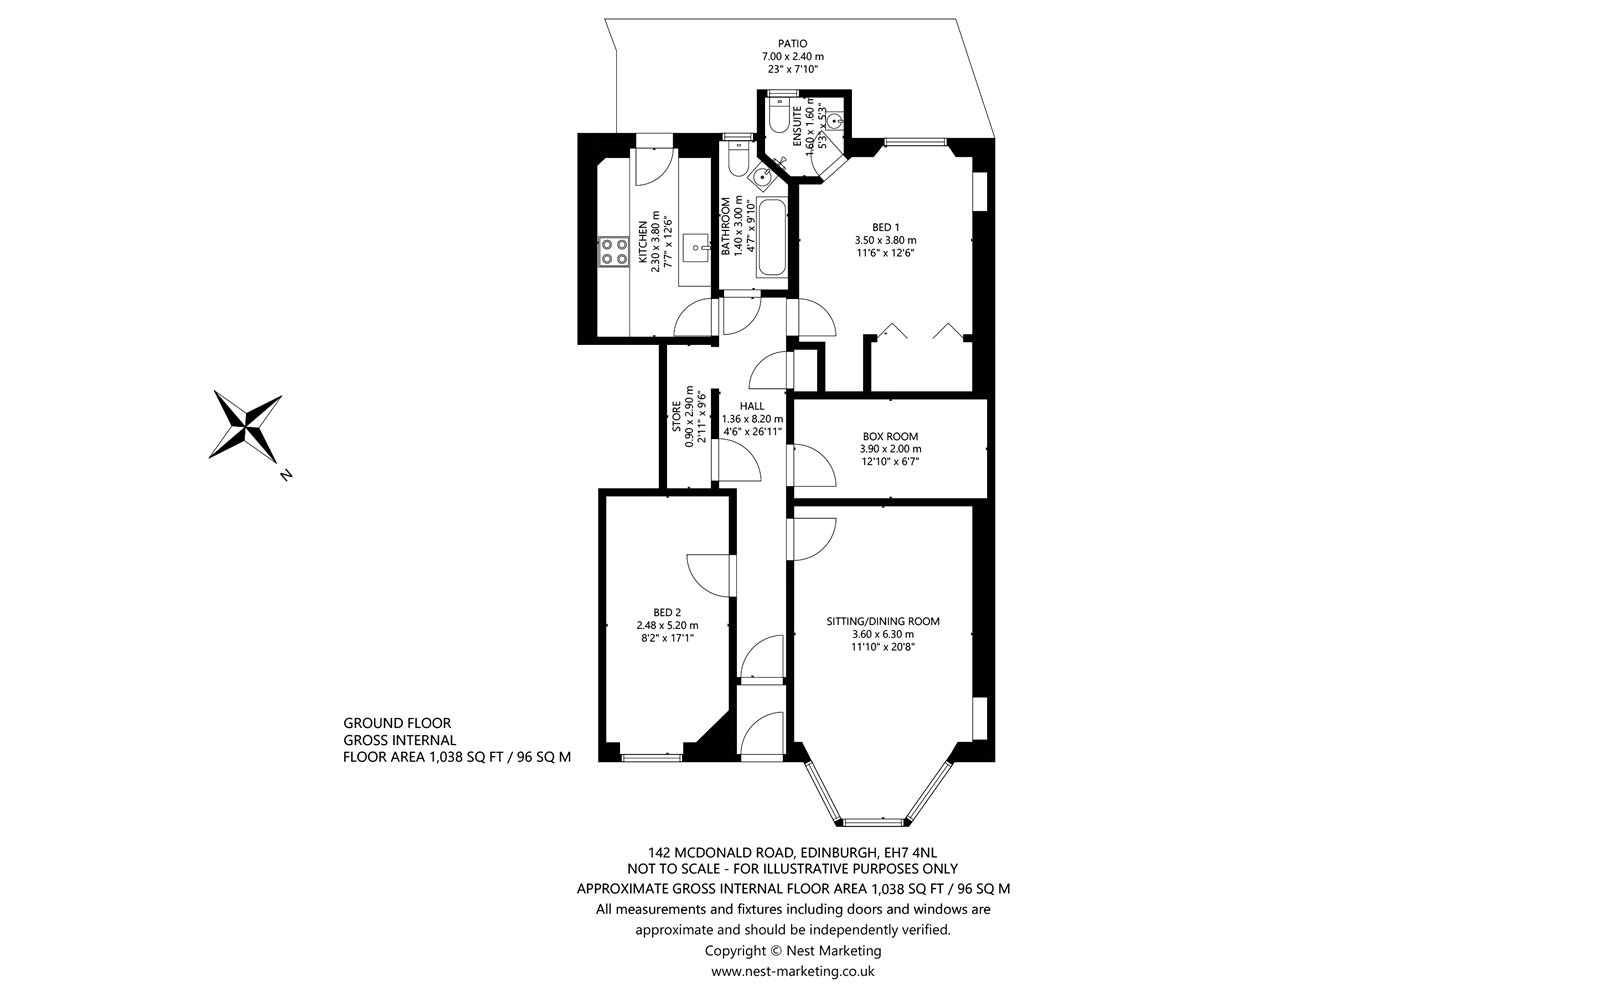 Floorplans for McDonald Road, Edinburgh, Midlothian, EH7